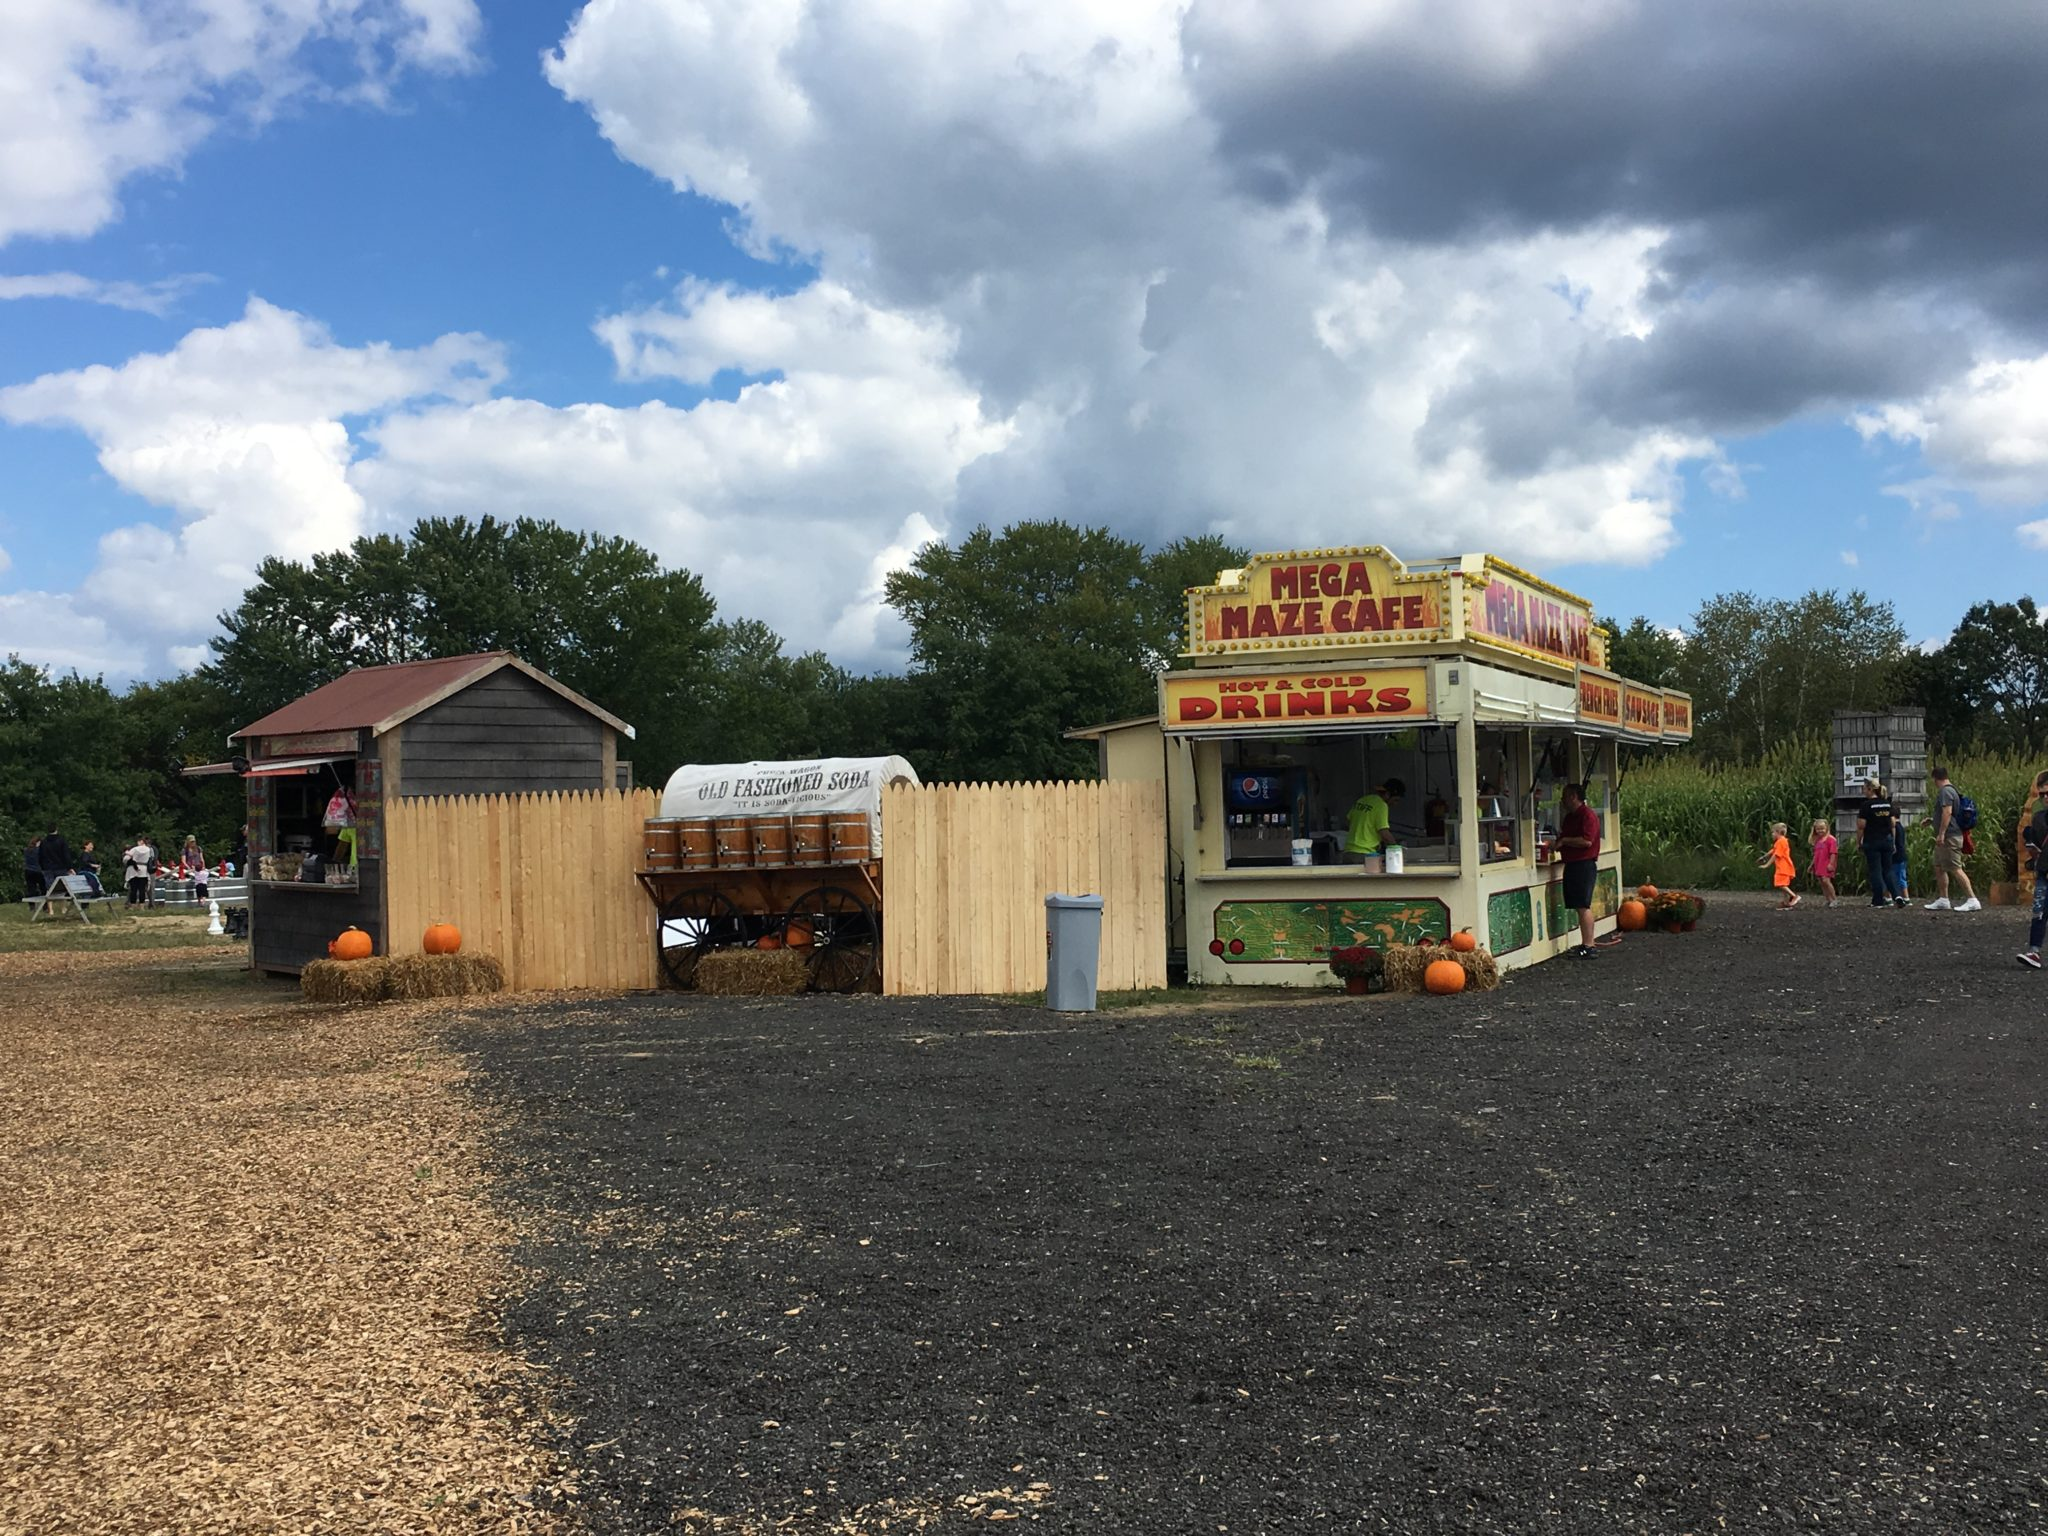 Getting lost in a corn maze is one of the most fun things you can do with your family in the fall. Mann Orchard's Riverside Farm Corn Maze is now open!